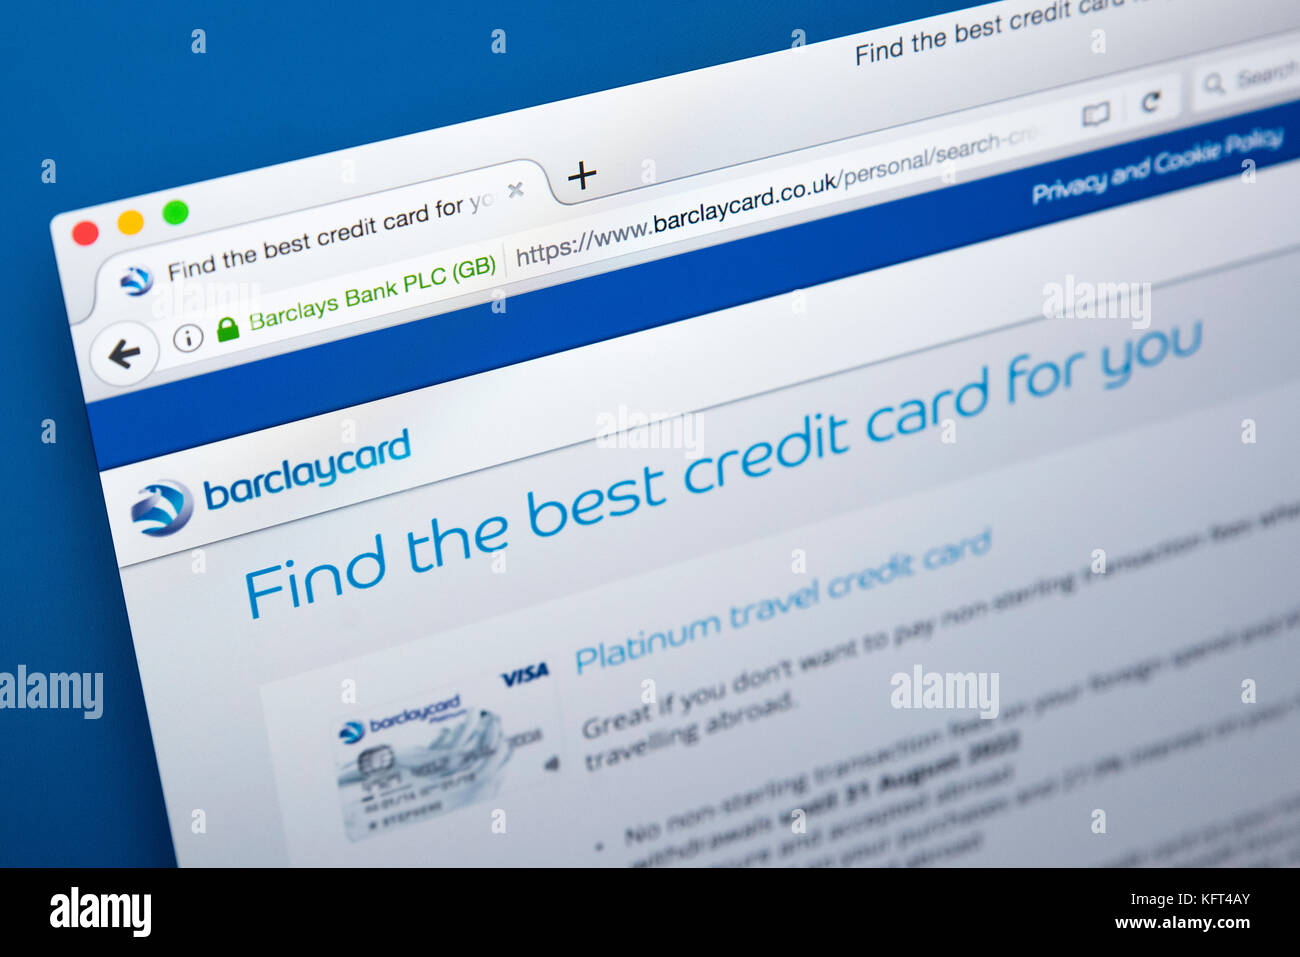 Barclaycard credit card stock photos barclaycard credit card stock london uk october 17th 2017 the homepage of the official website for barclaycard reheart Images